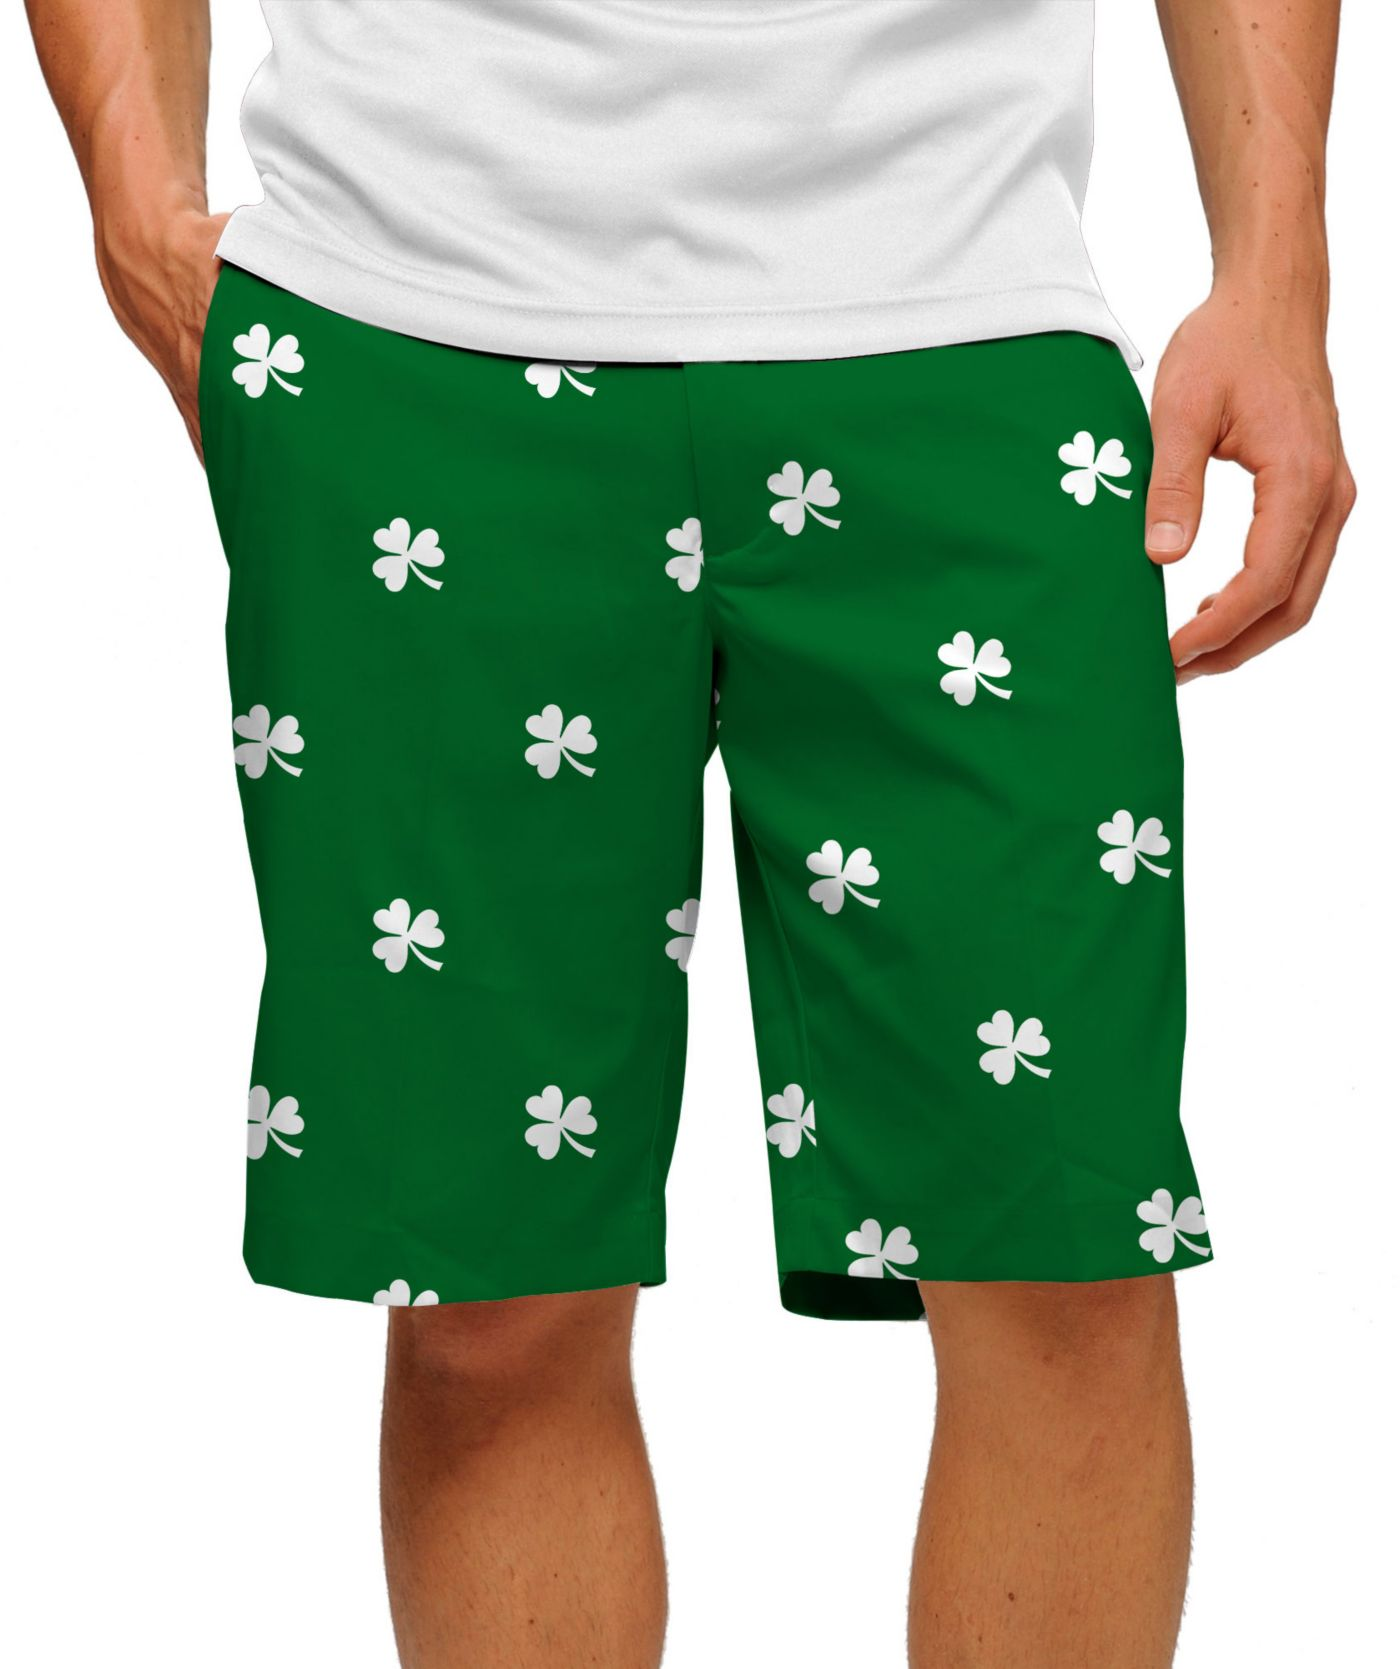 Loudmouth Men's Shamrock Stretch Tech Golf Shorts